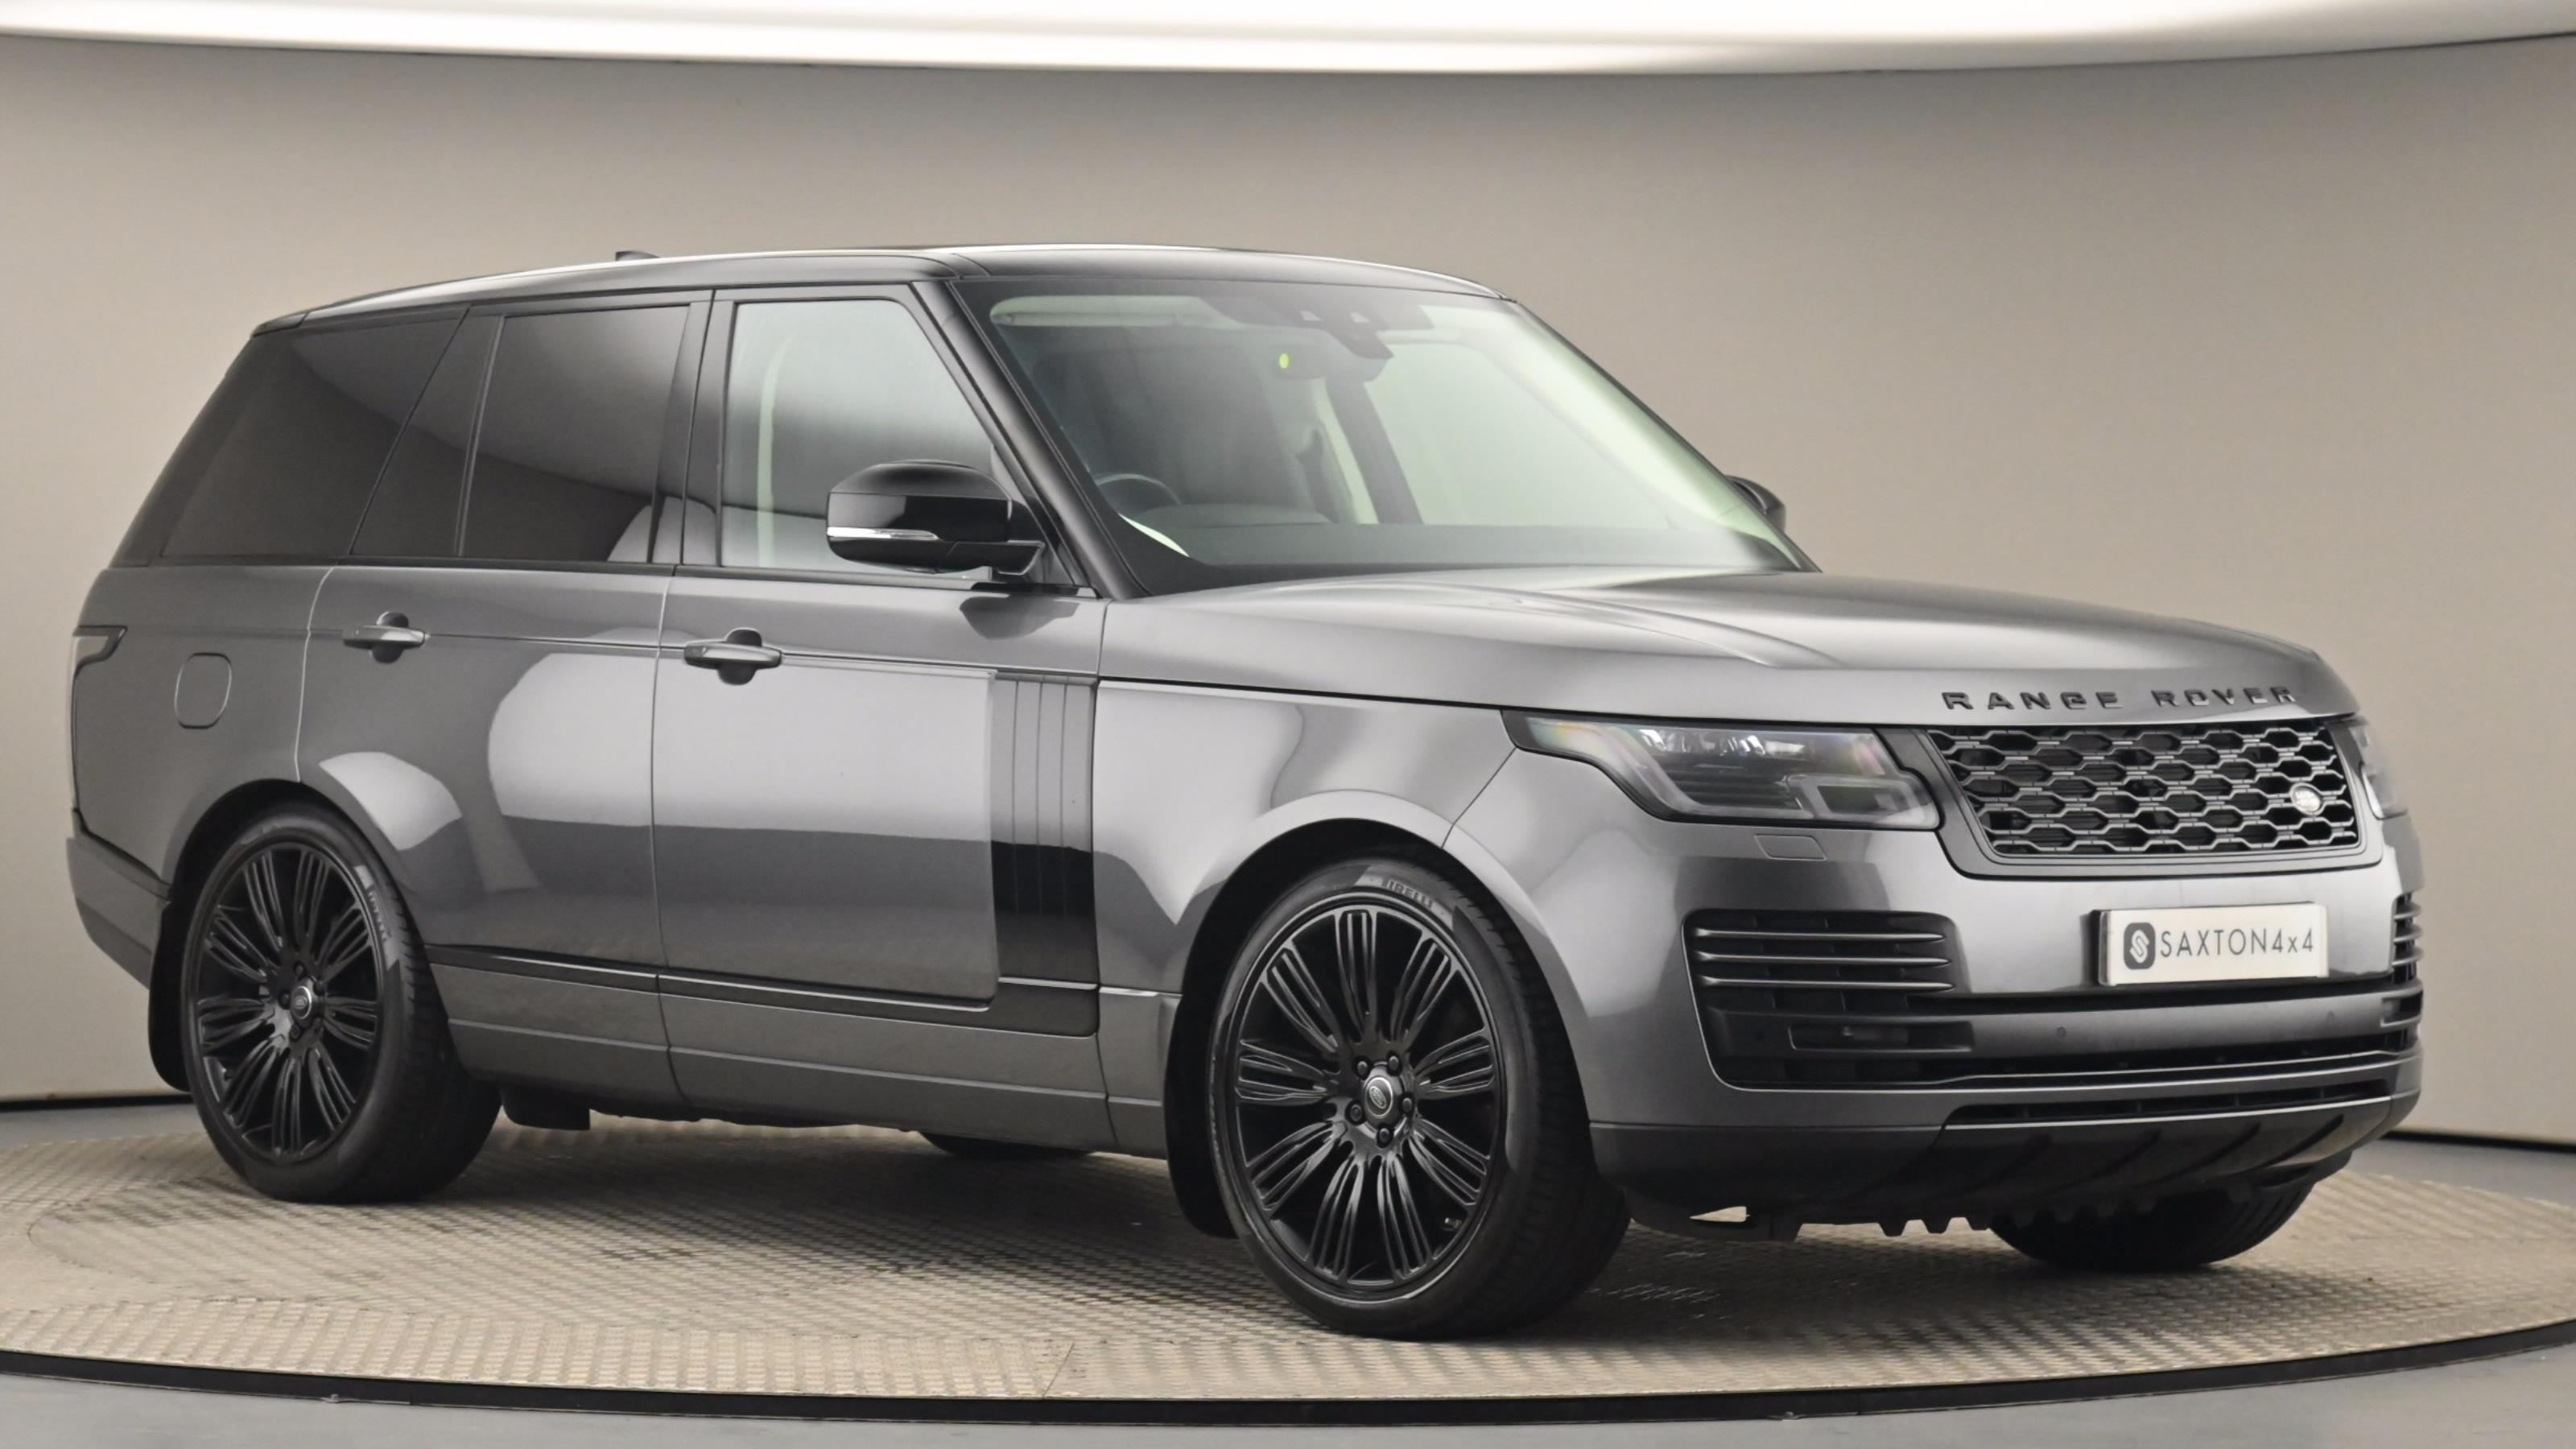 Used 2019 Land Rover RANGE ROVER 3.0 SDV6 Vogue 4dr Auto at Saxton4x4